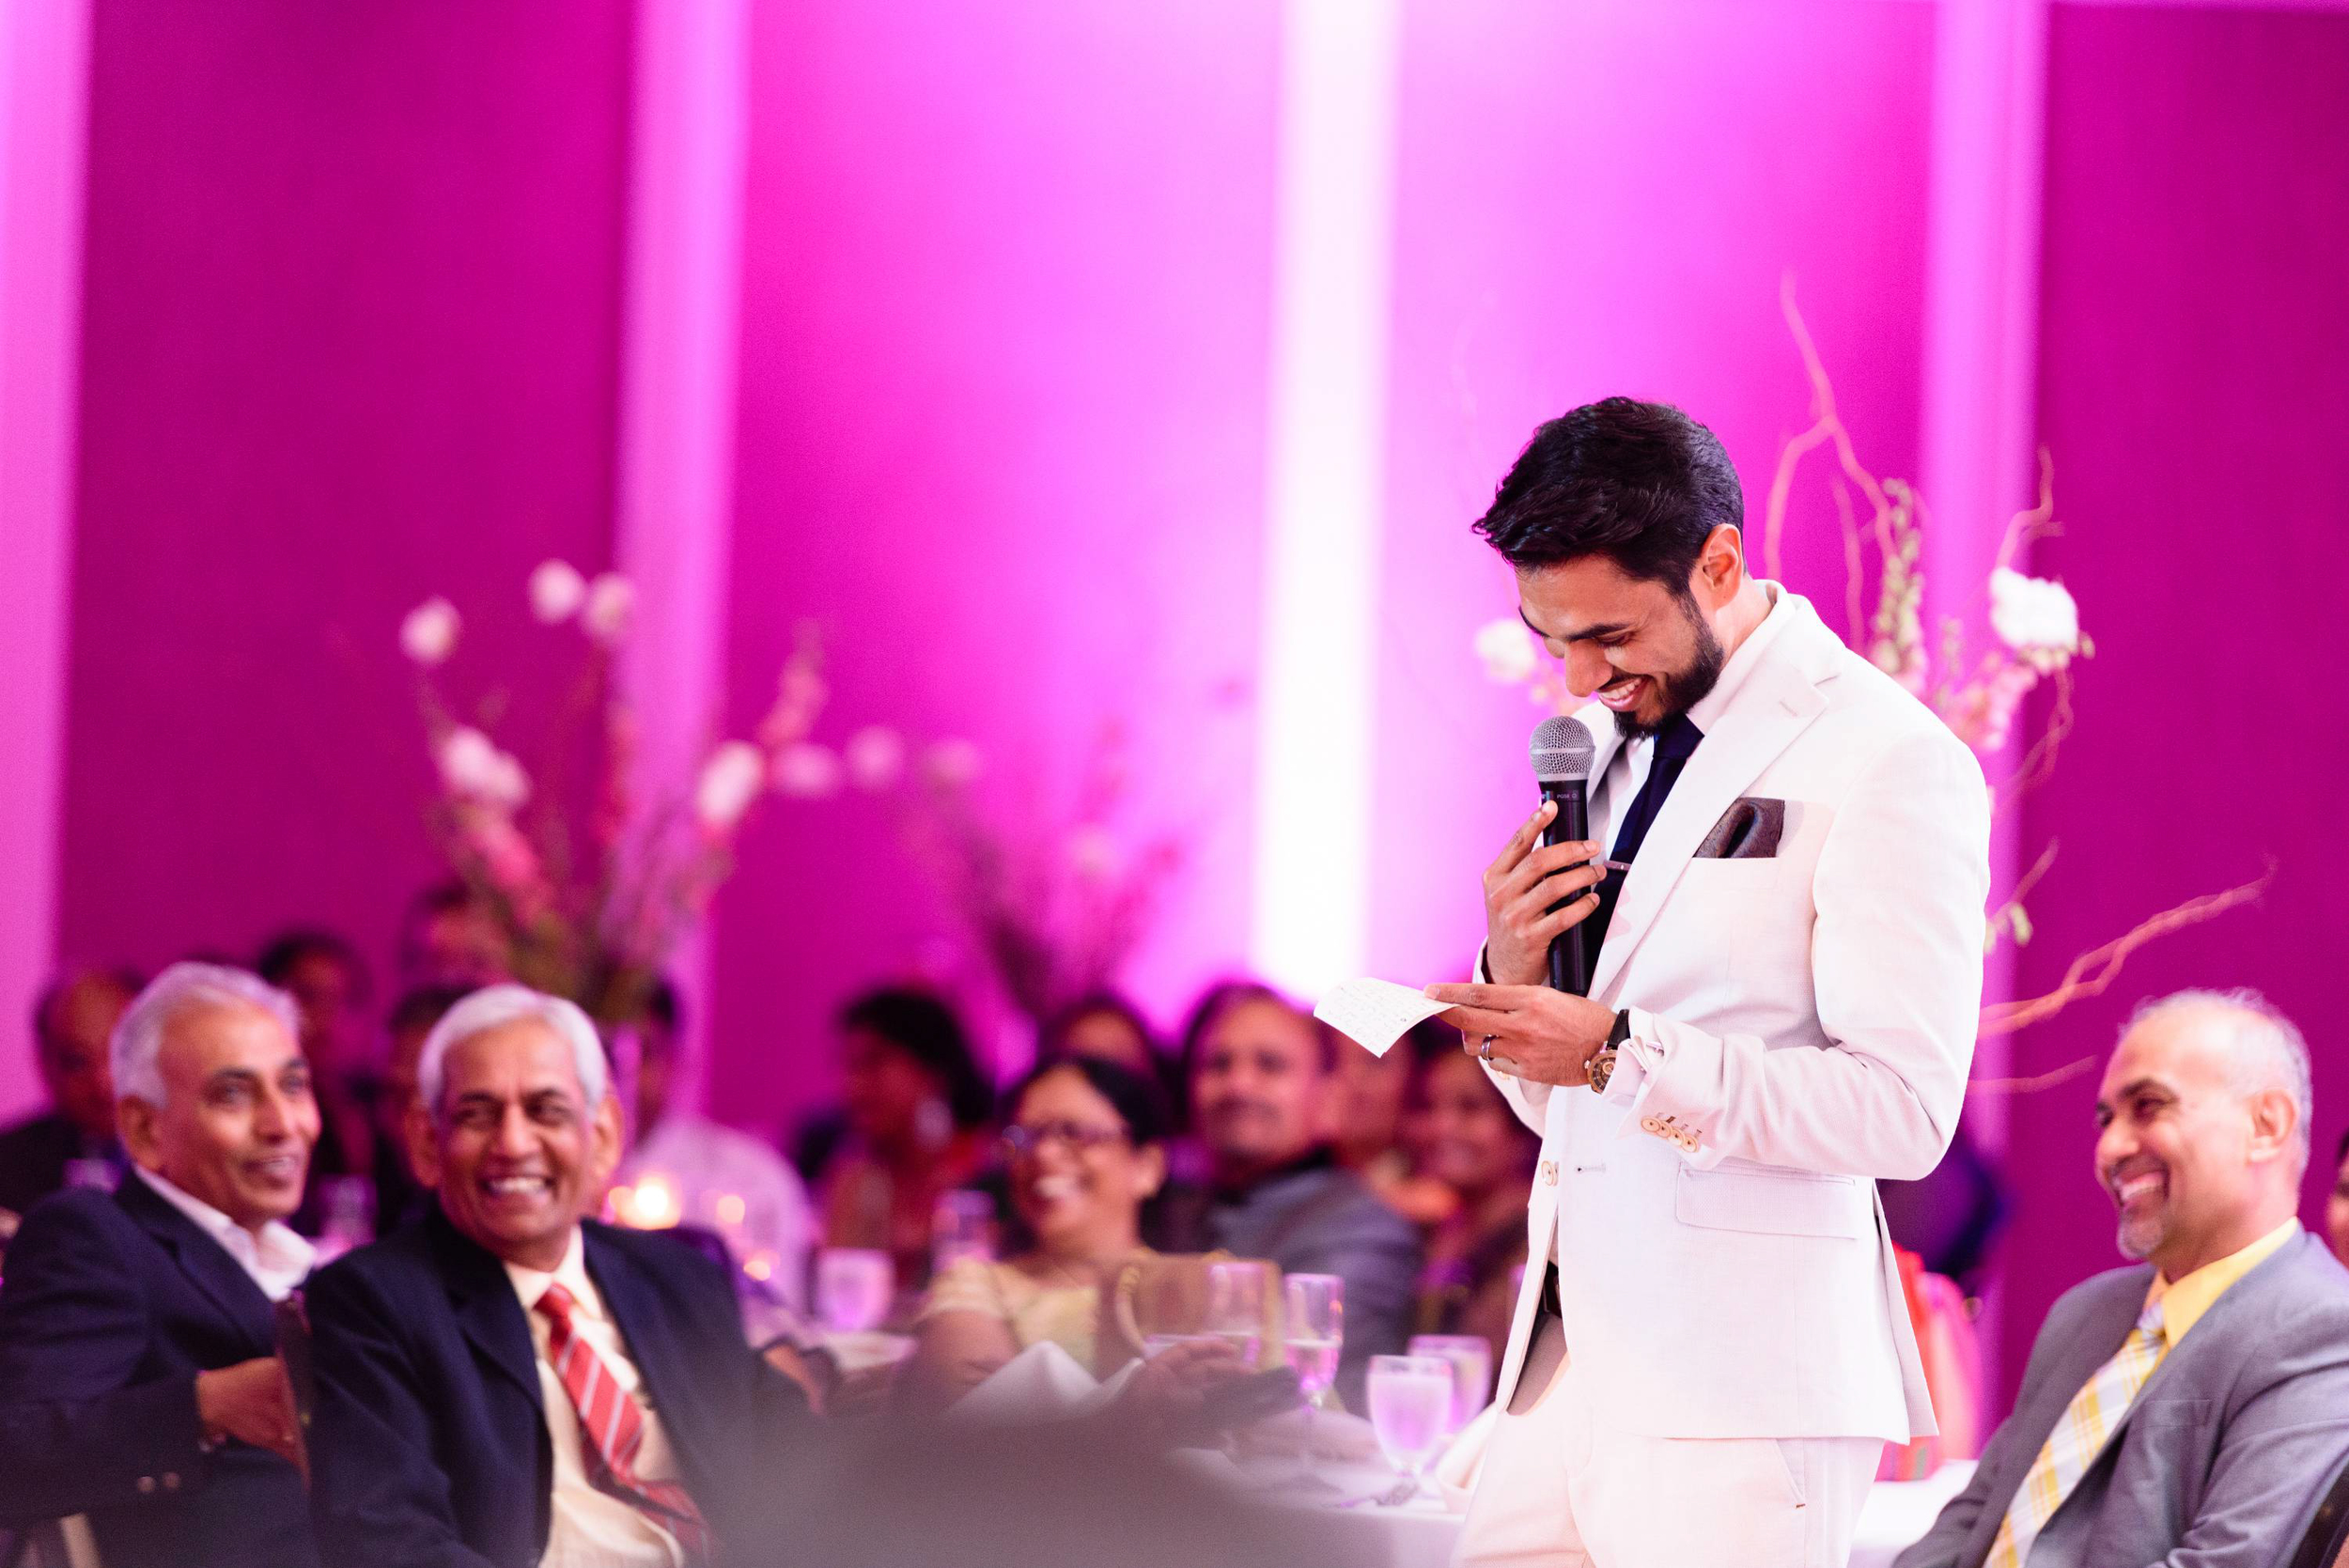 Bride's brother delivering a toasting speech for his sister & brother-in-law. We love that you can see the guests reaction in the background